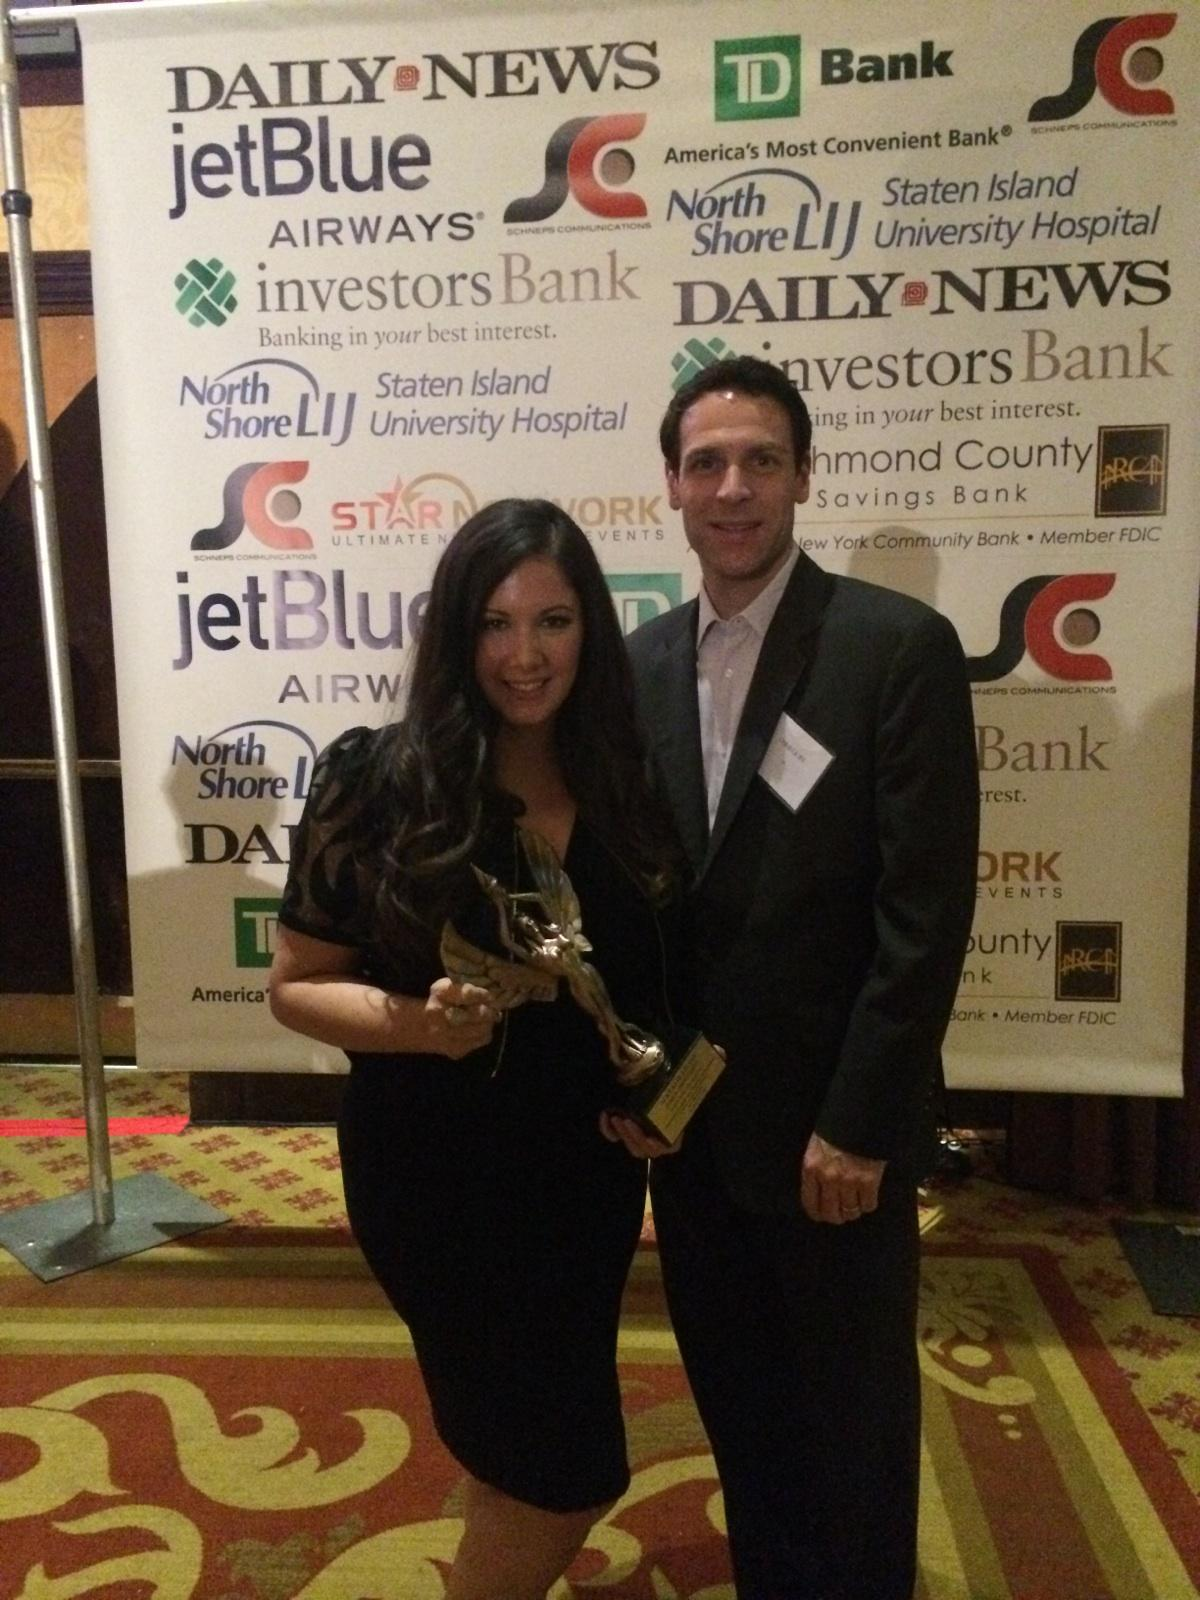 AWARDS FOR STATEN ISLAND TOP WOMEN IN BUSINESS